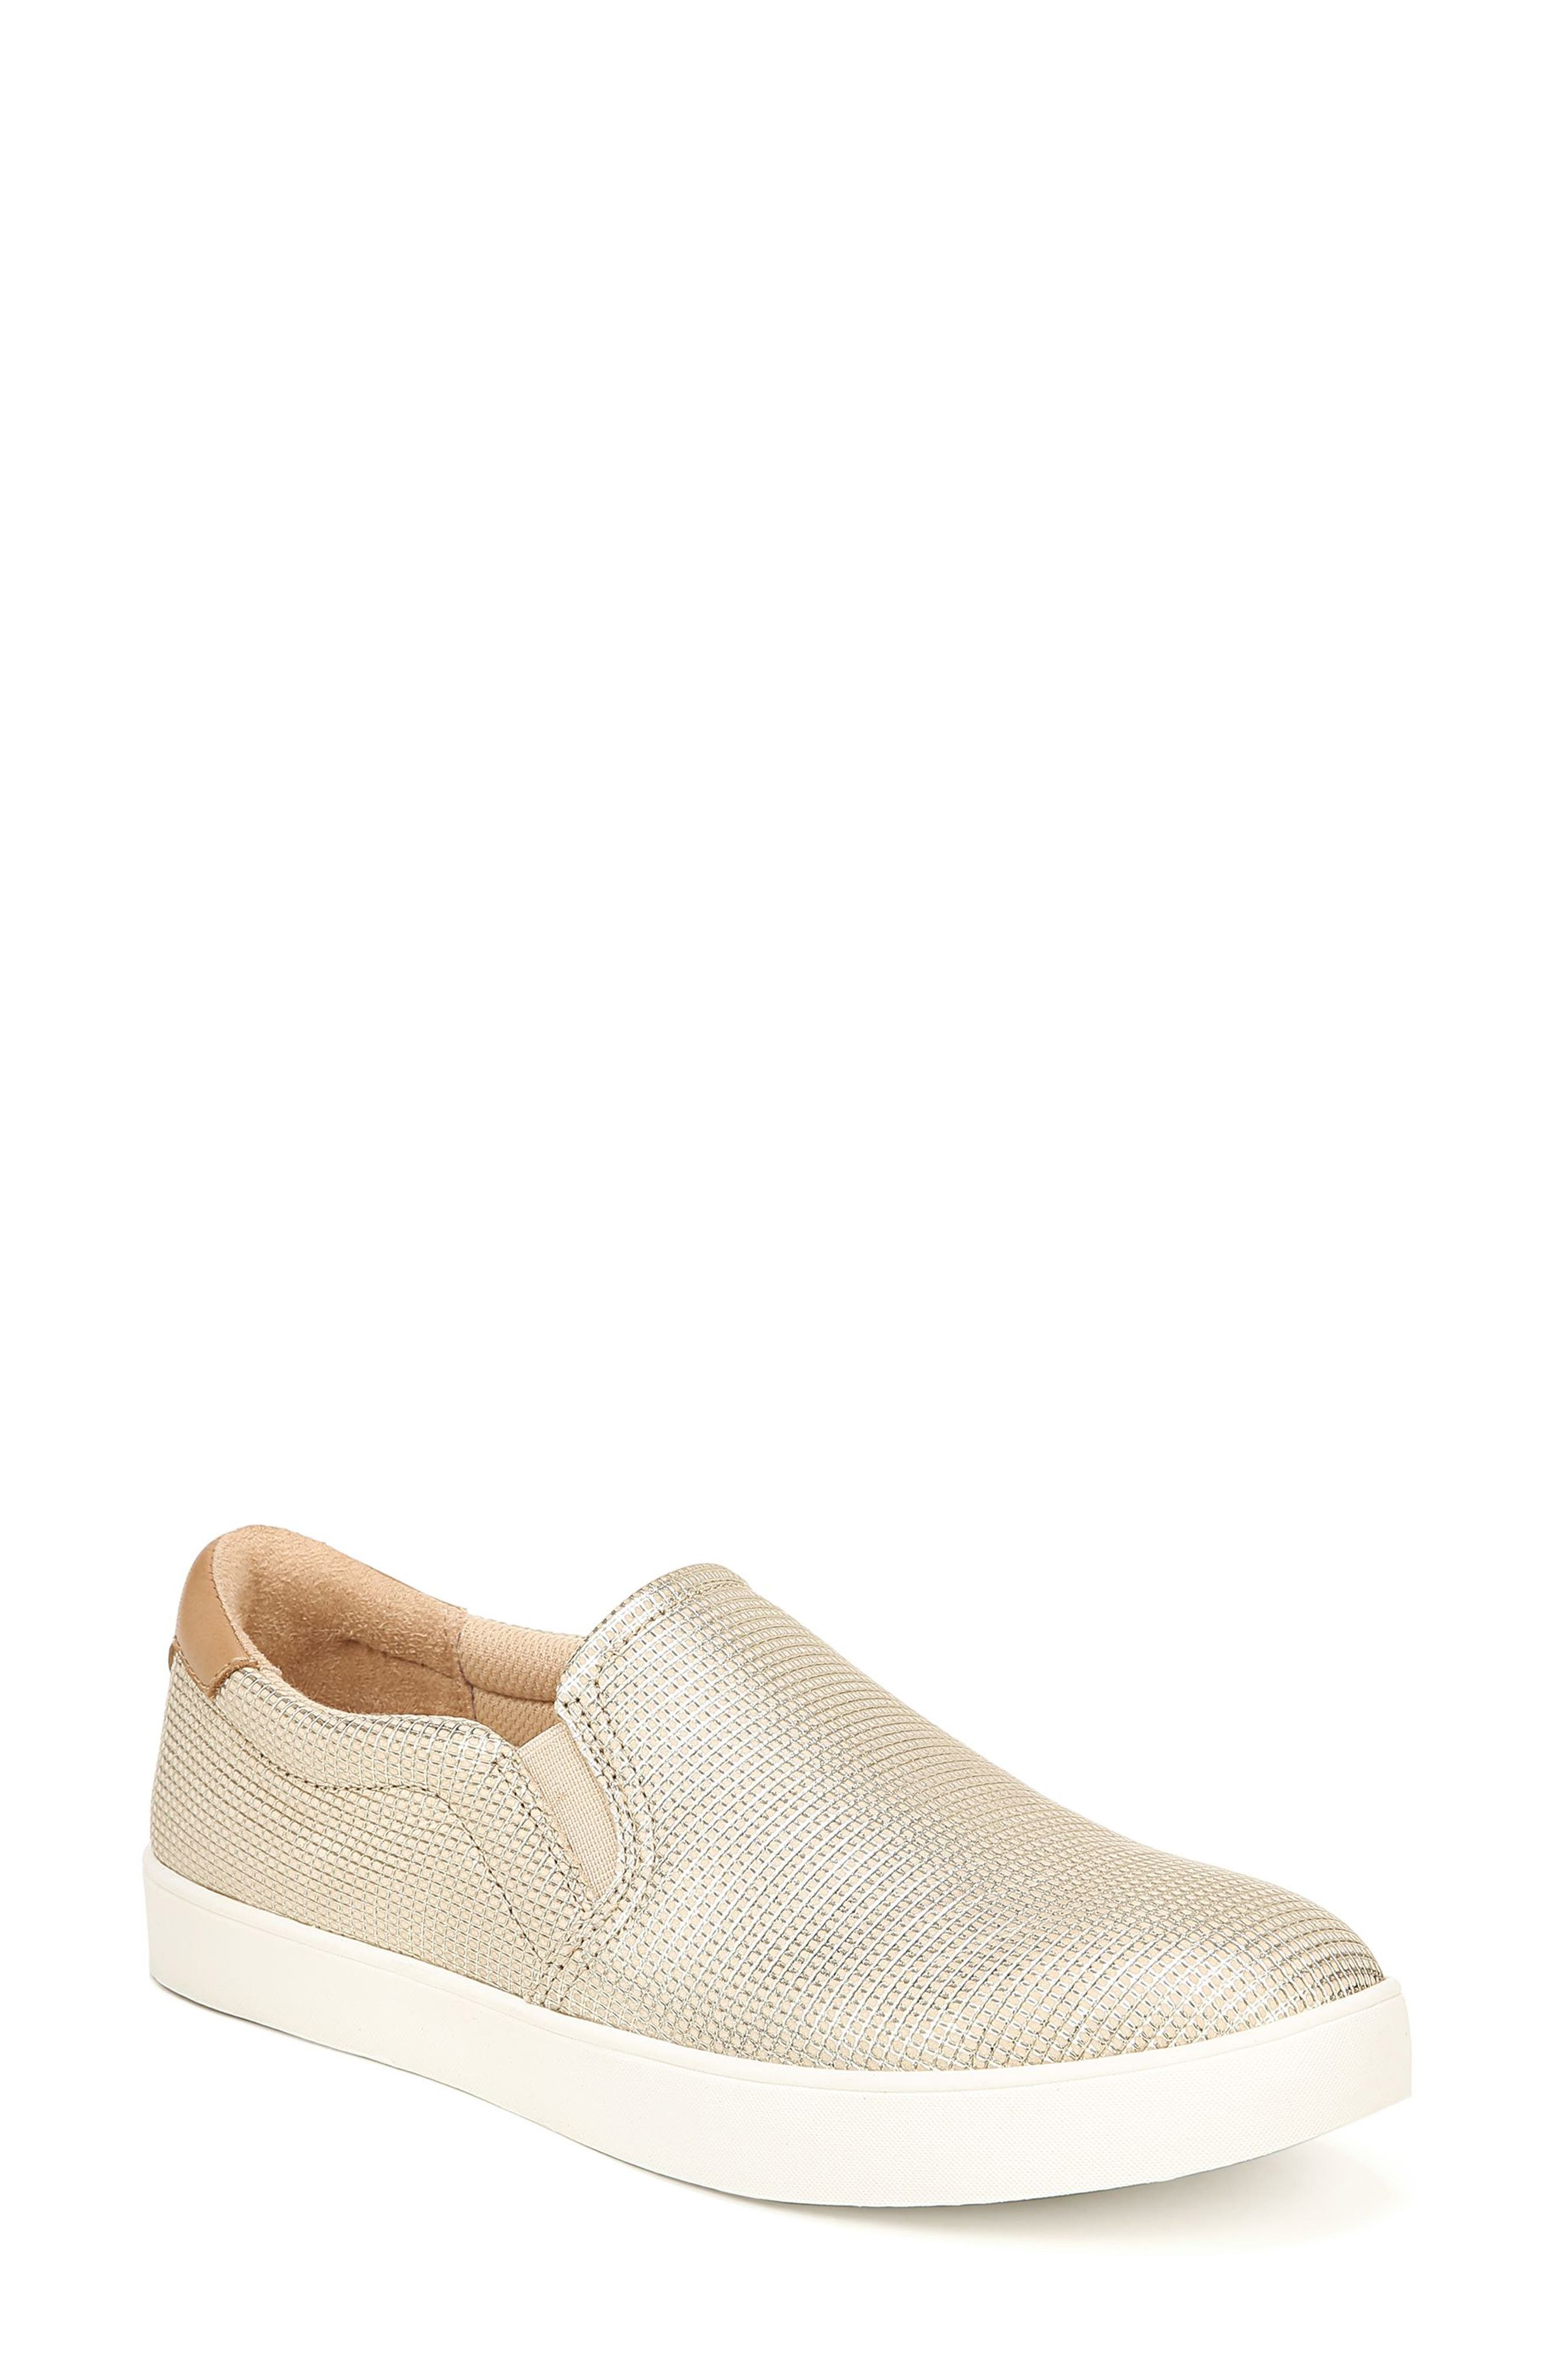 Original Collection 'Scout' Slip On Sneaker, Main, color, BEIGE LEATHER